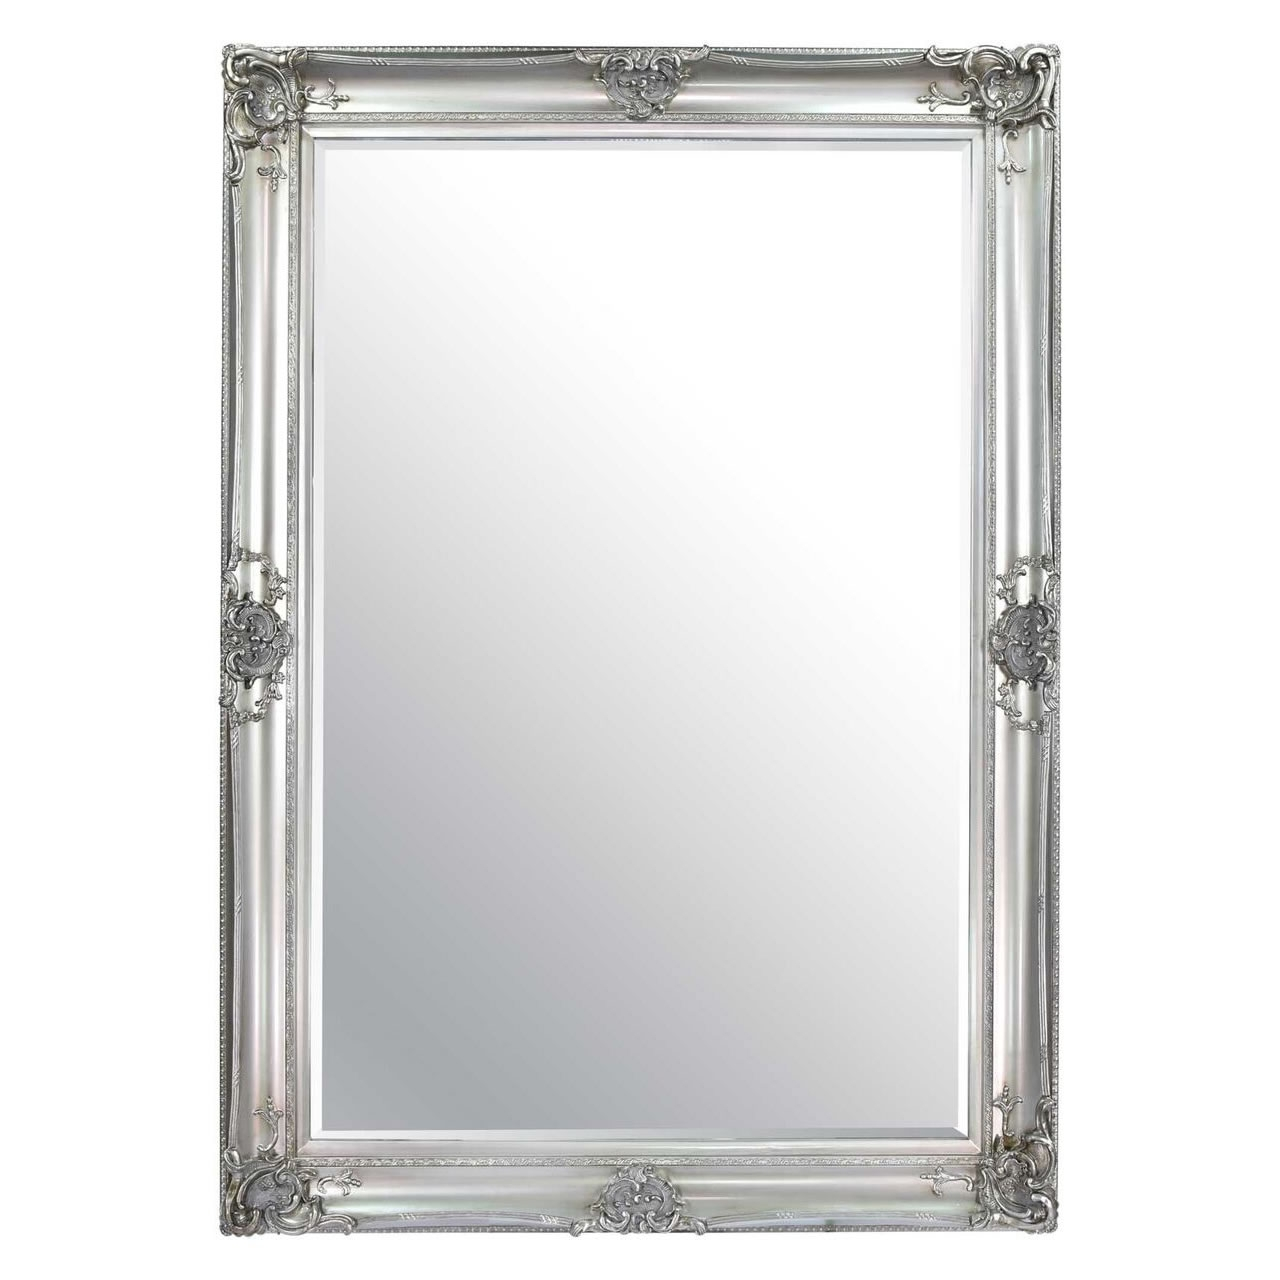 Full Length And Oversize Mirrors Regarding Ornate Silver Mirrors (View 9 of 15)